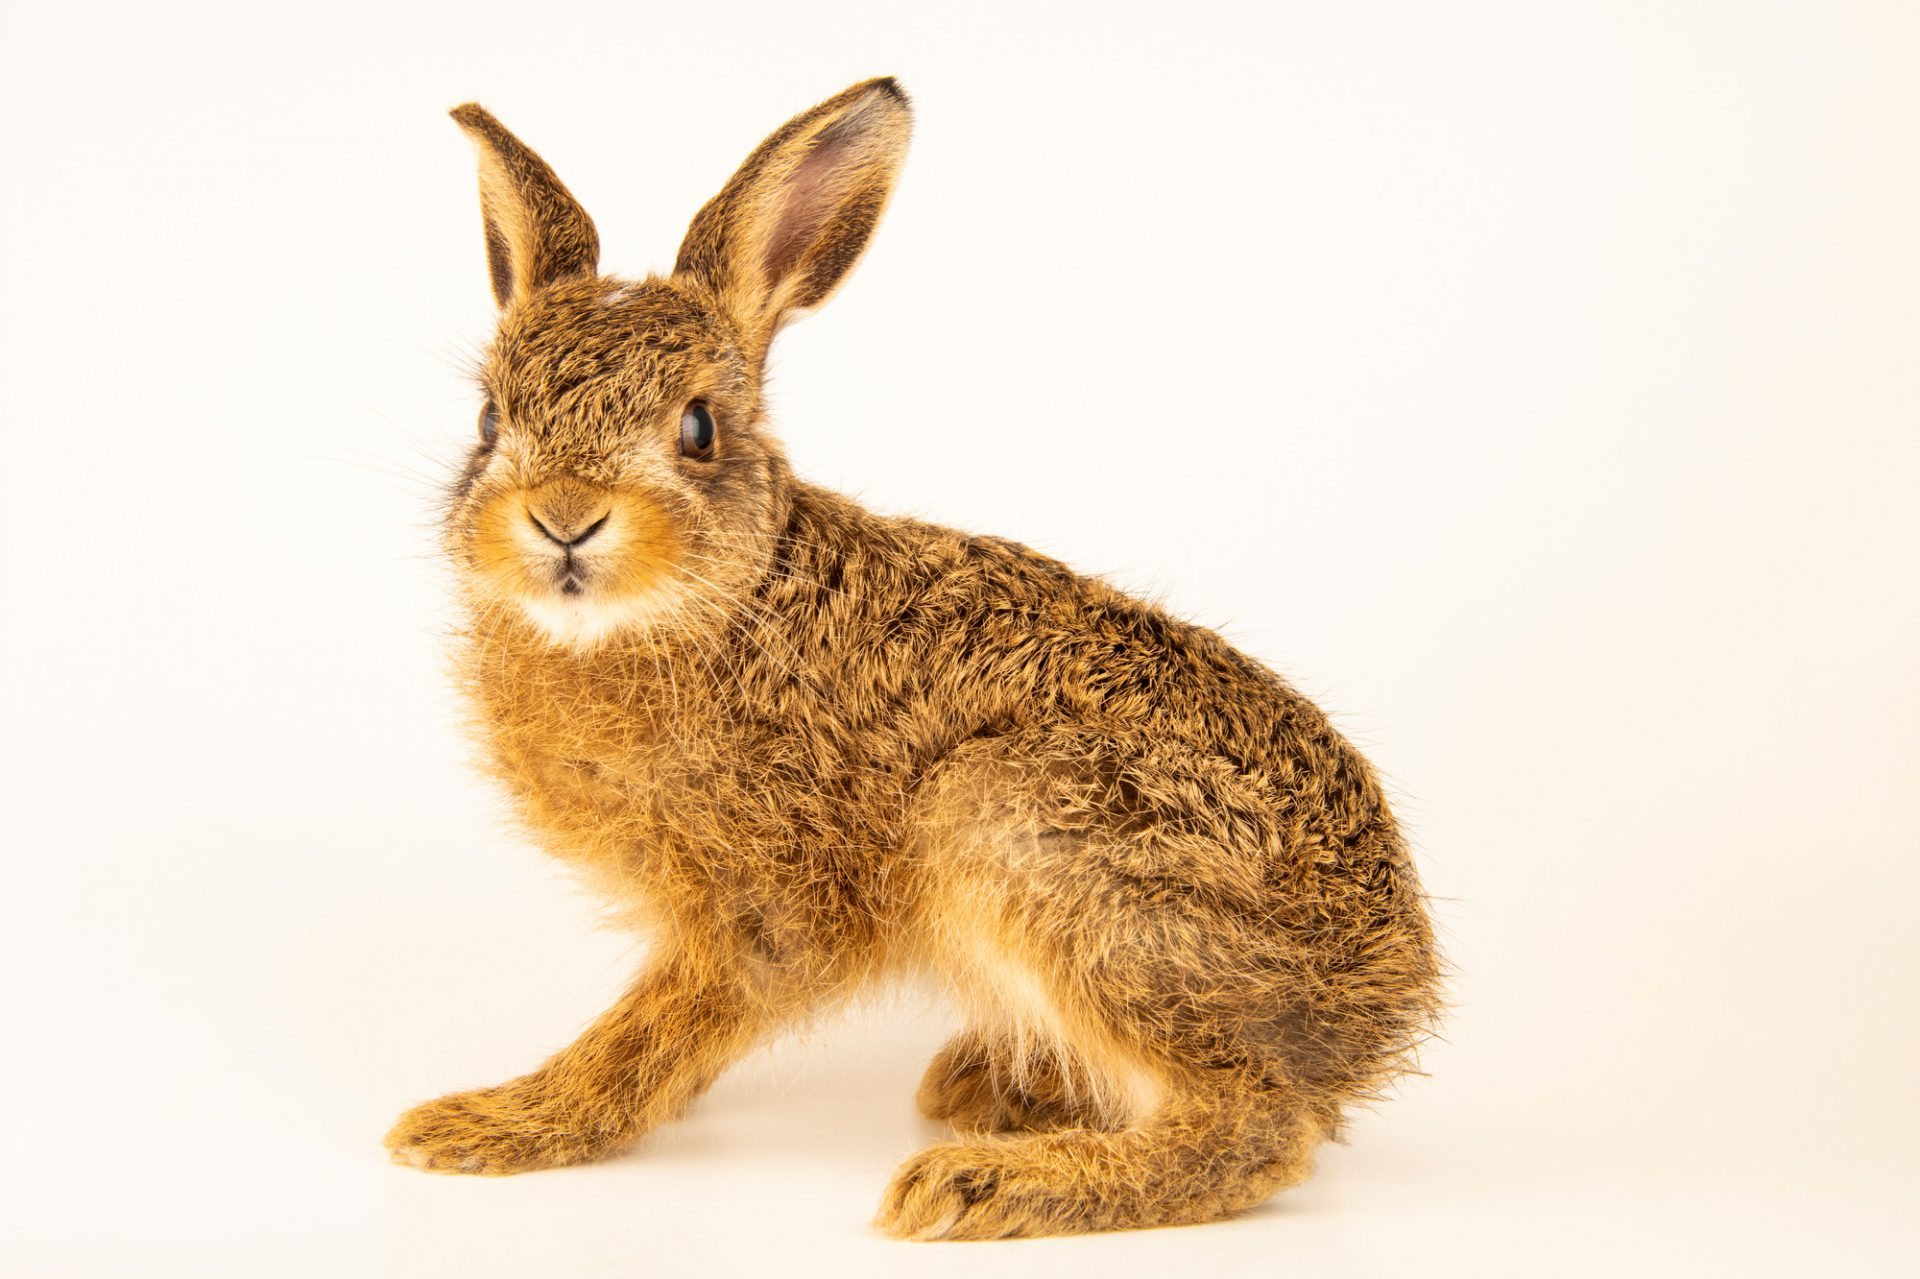 Photo: A brown hare (Lepus timidus scoticus) at Hessilhead Wildlife Rescue.